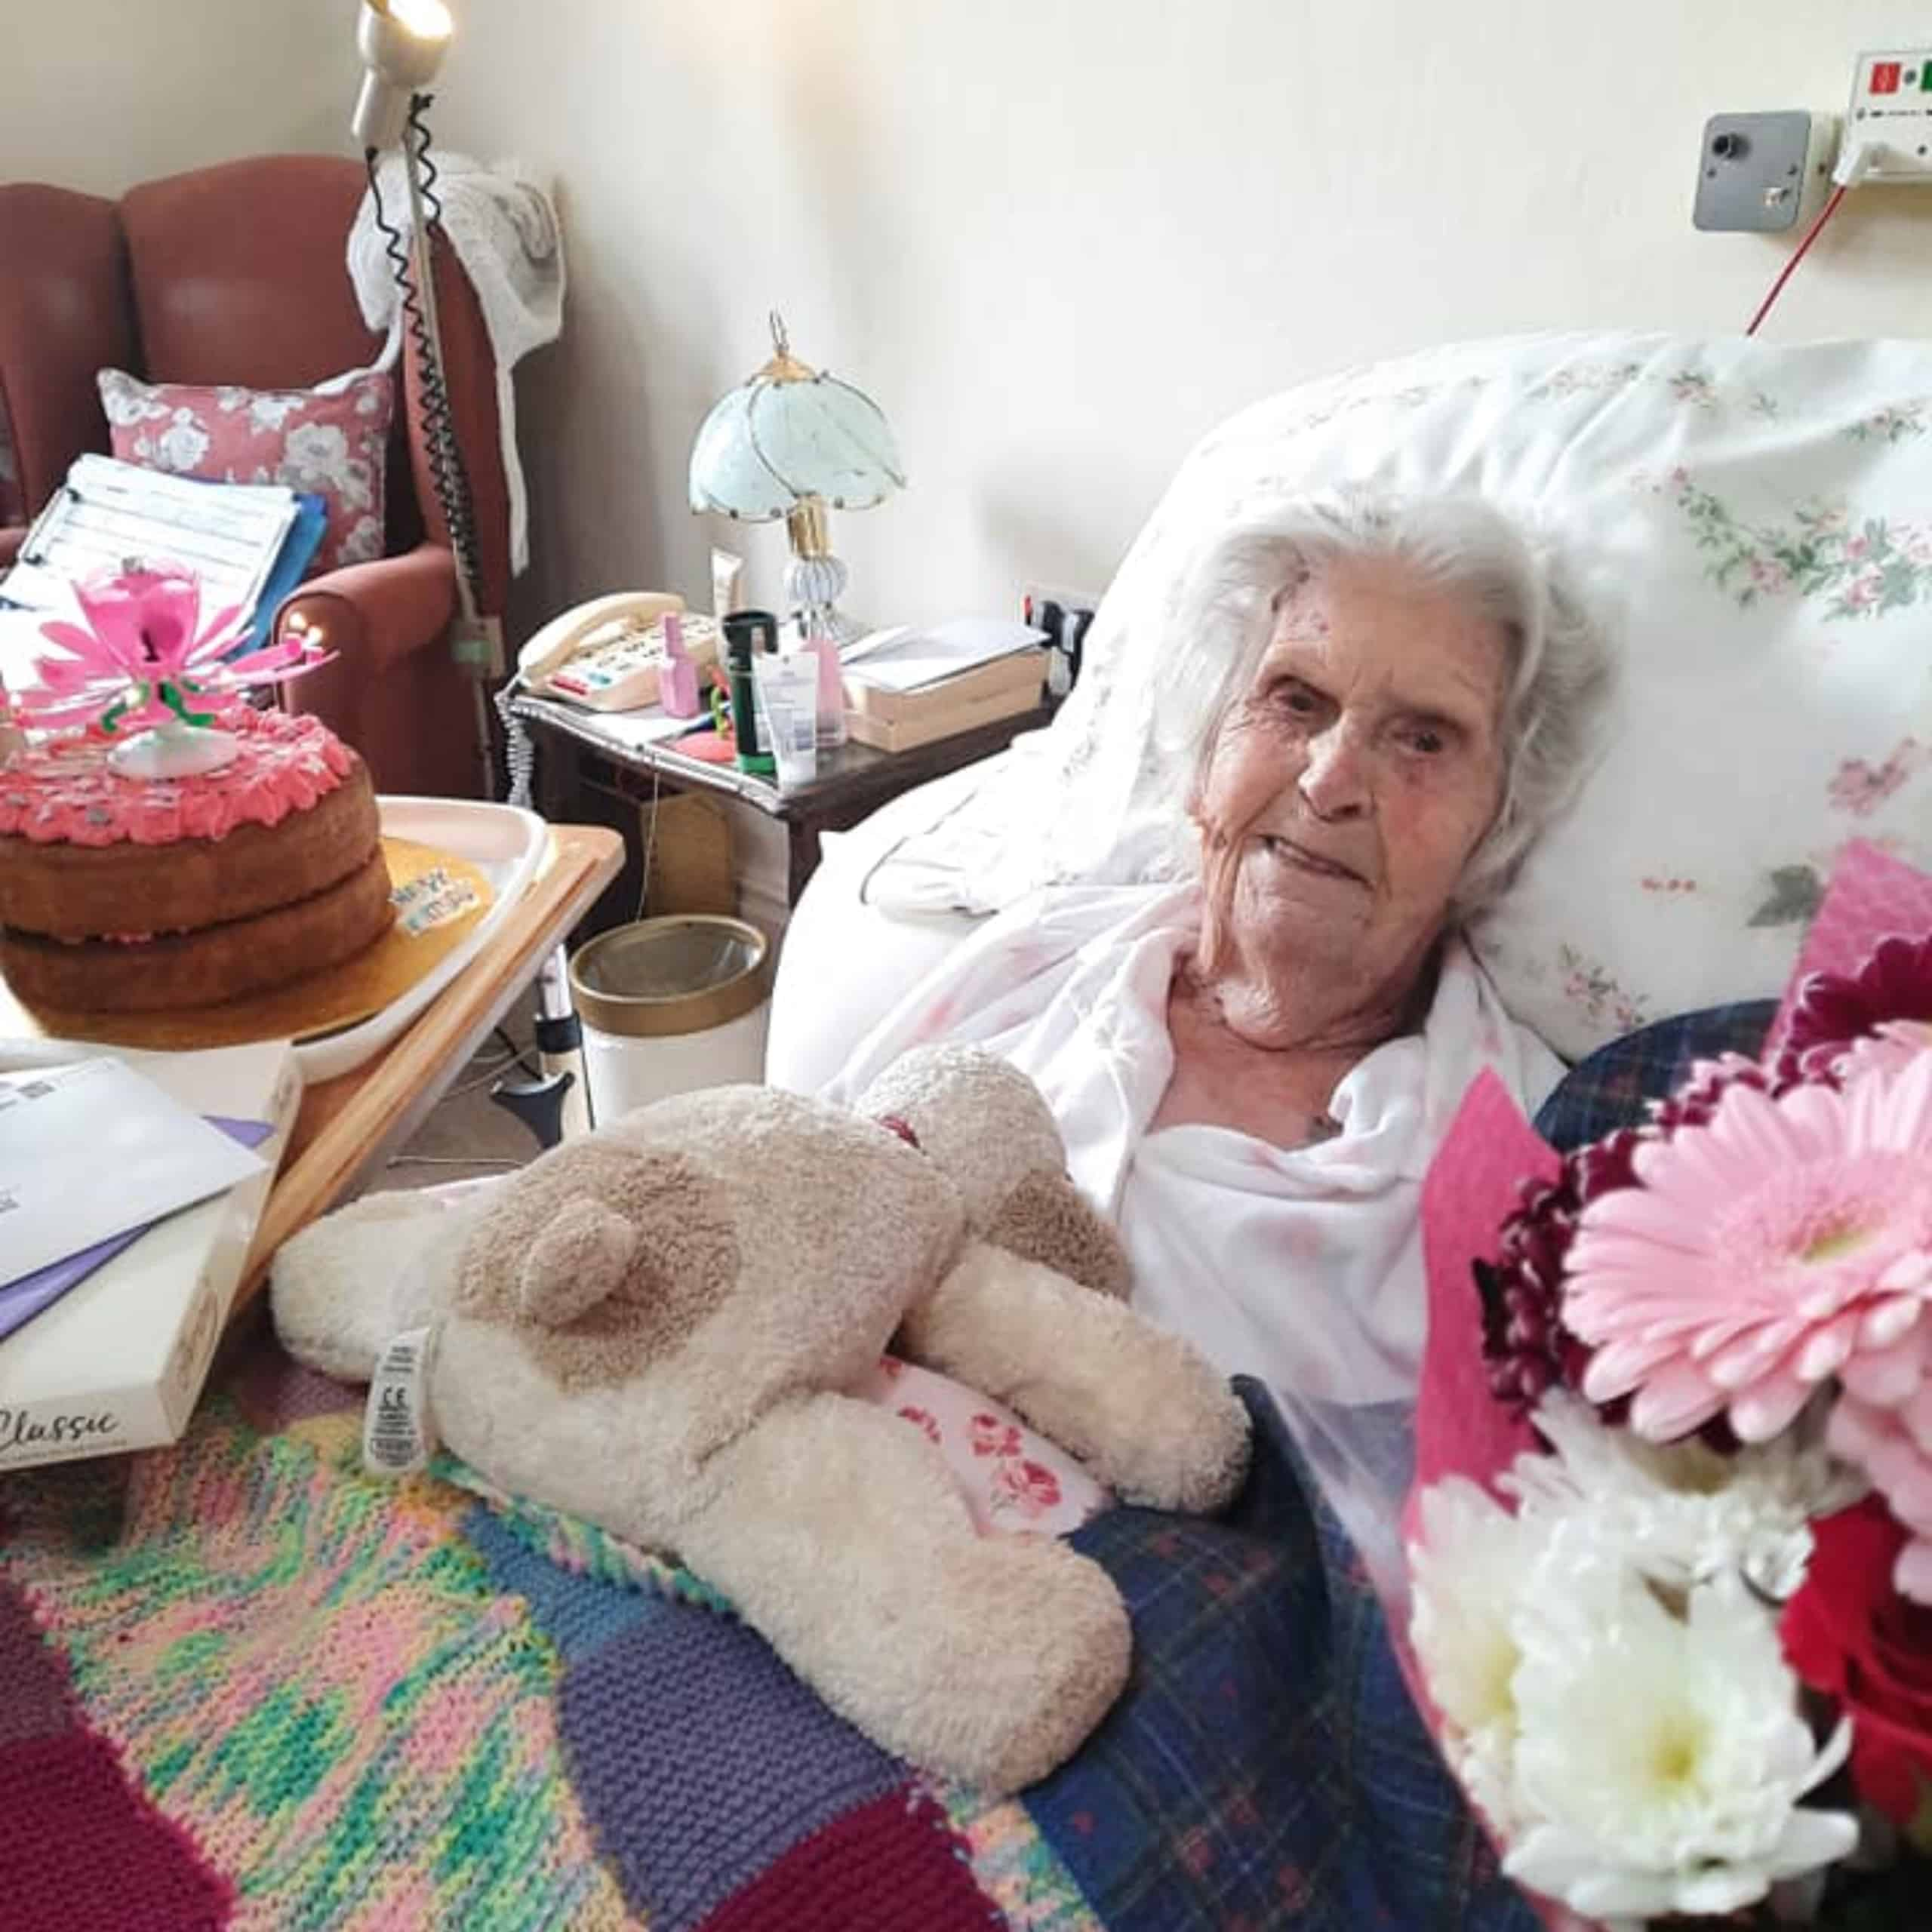 Wren House Care Home resident Barbara Elliot with her birthday cake and flowers.